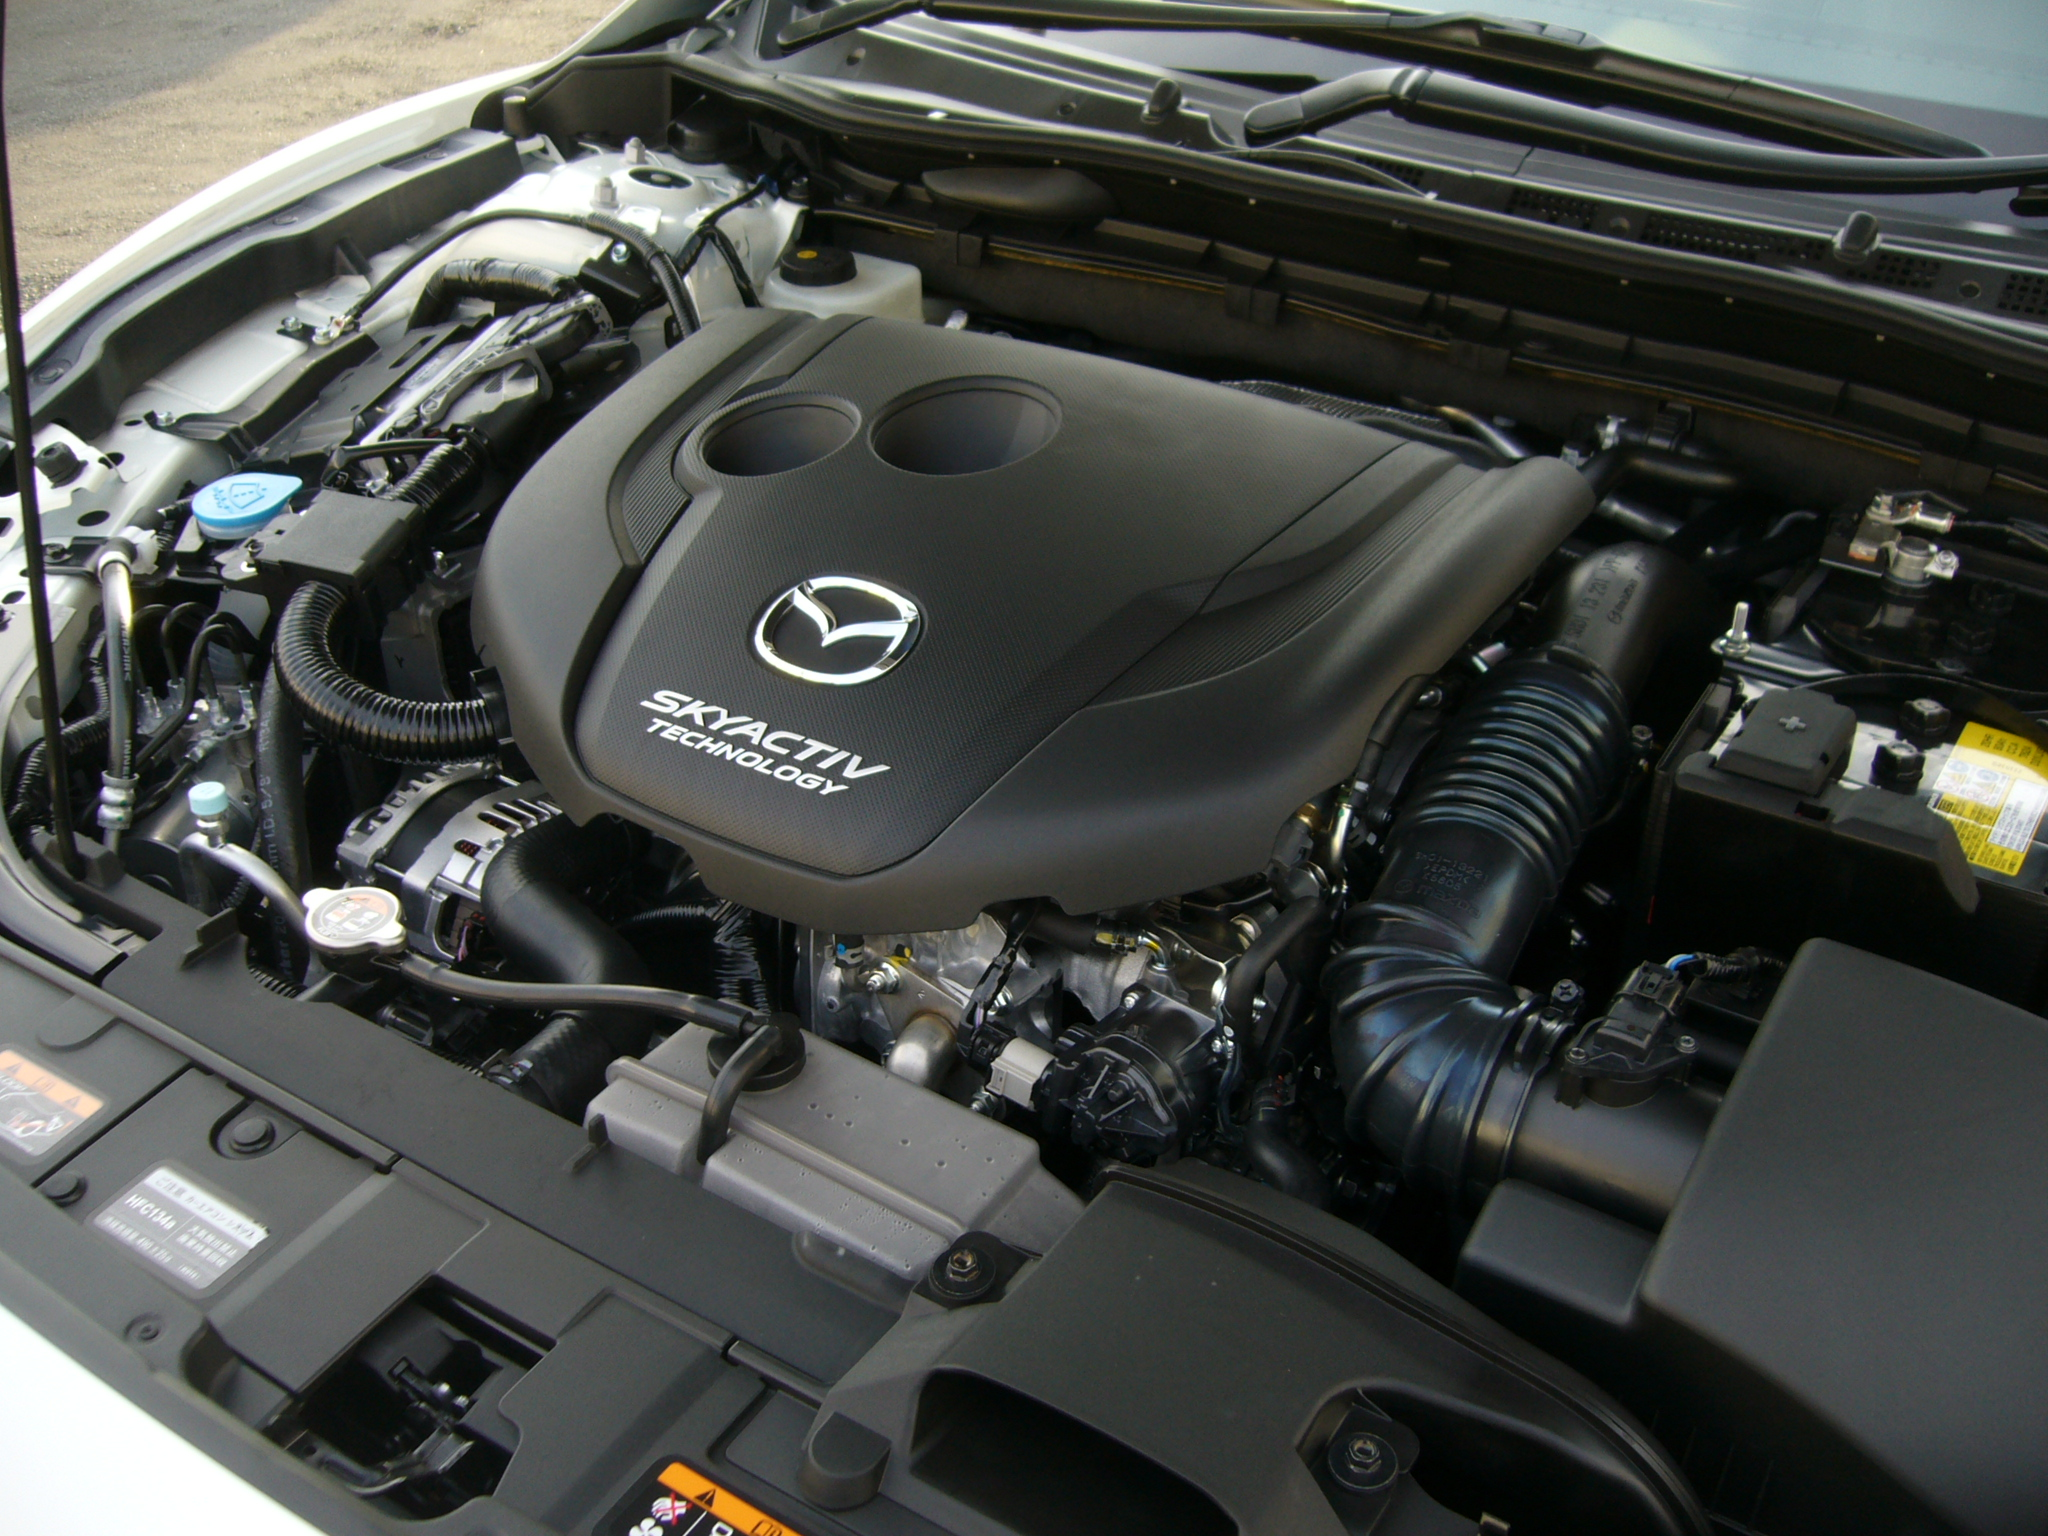 Mazda's EV resistance may mean CAFE trouble ahead